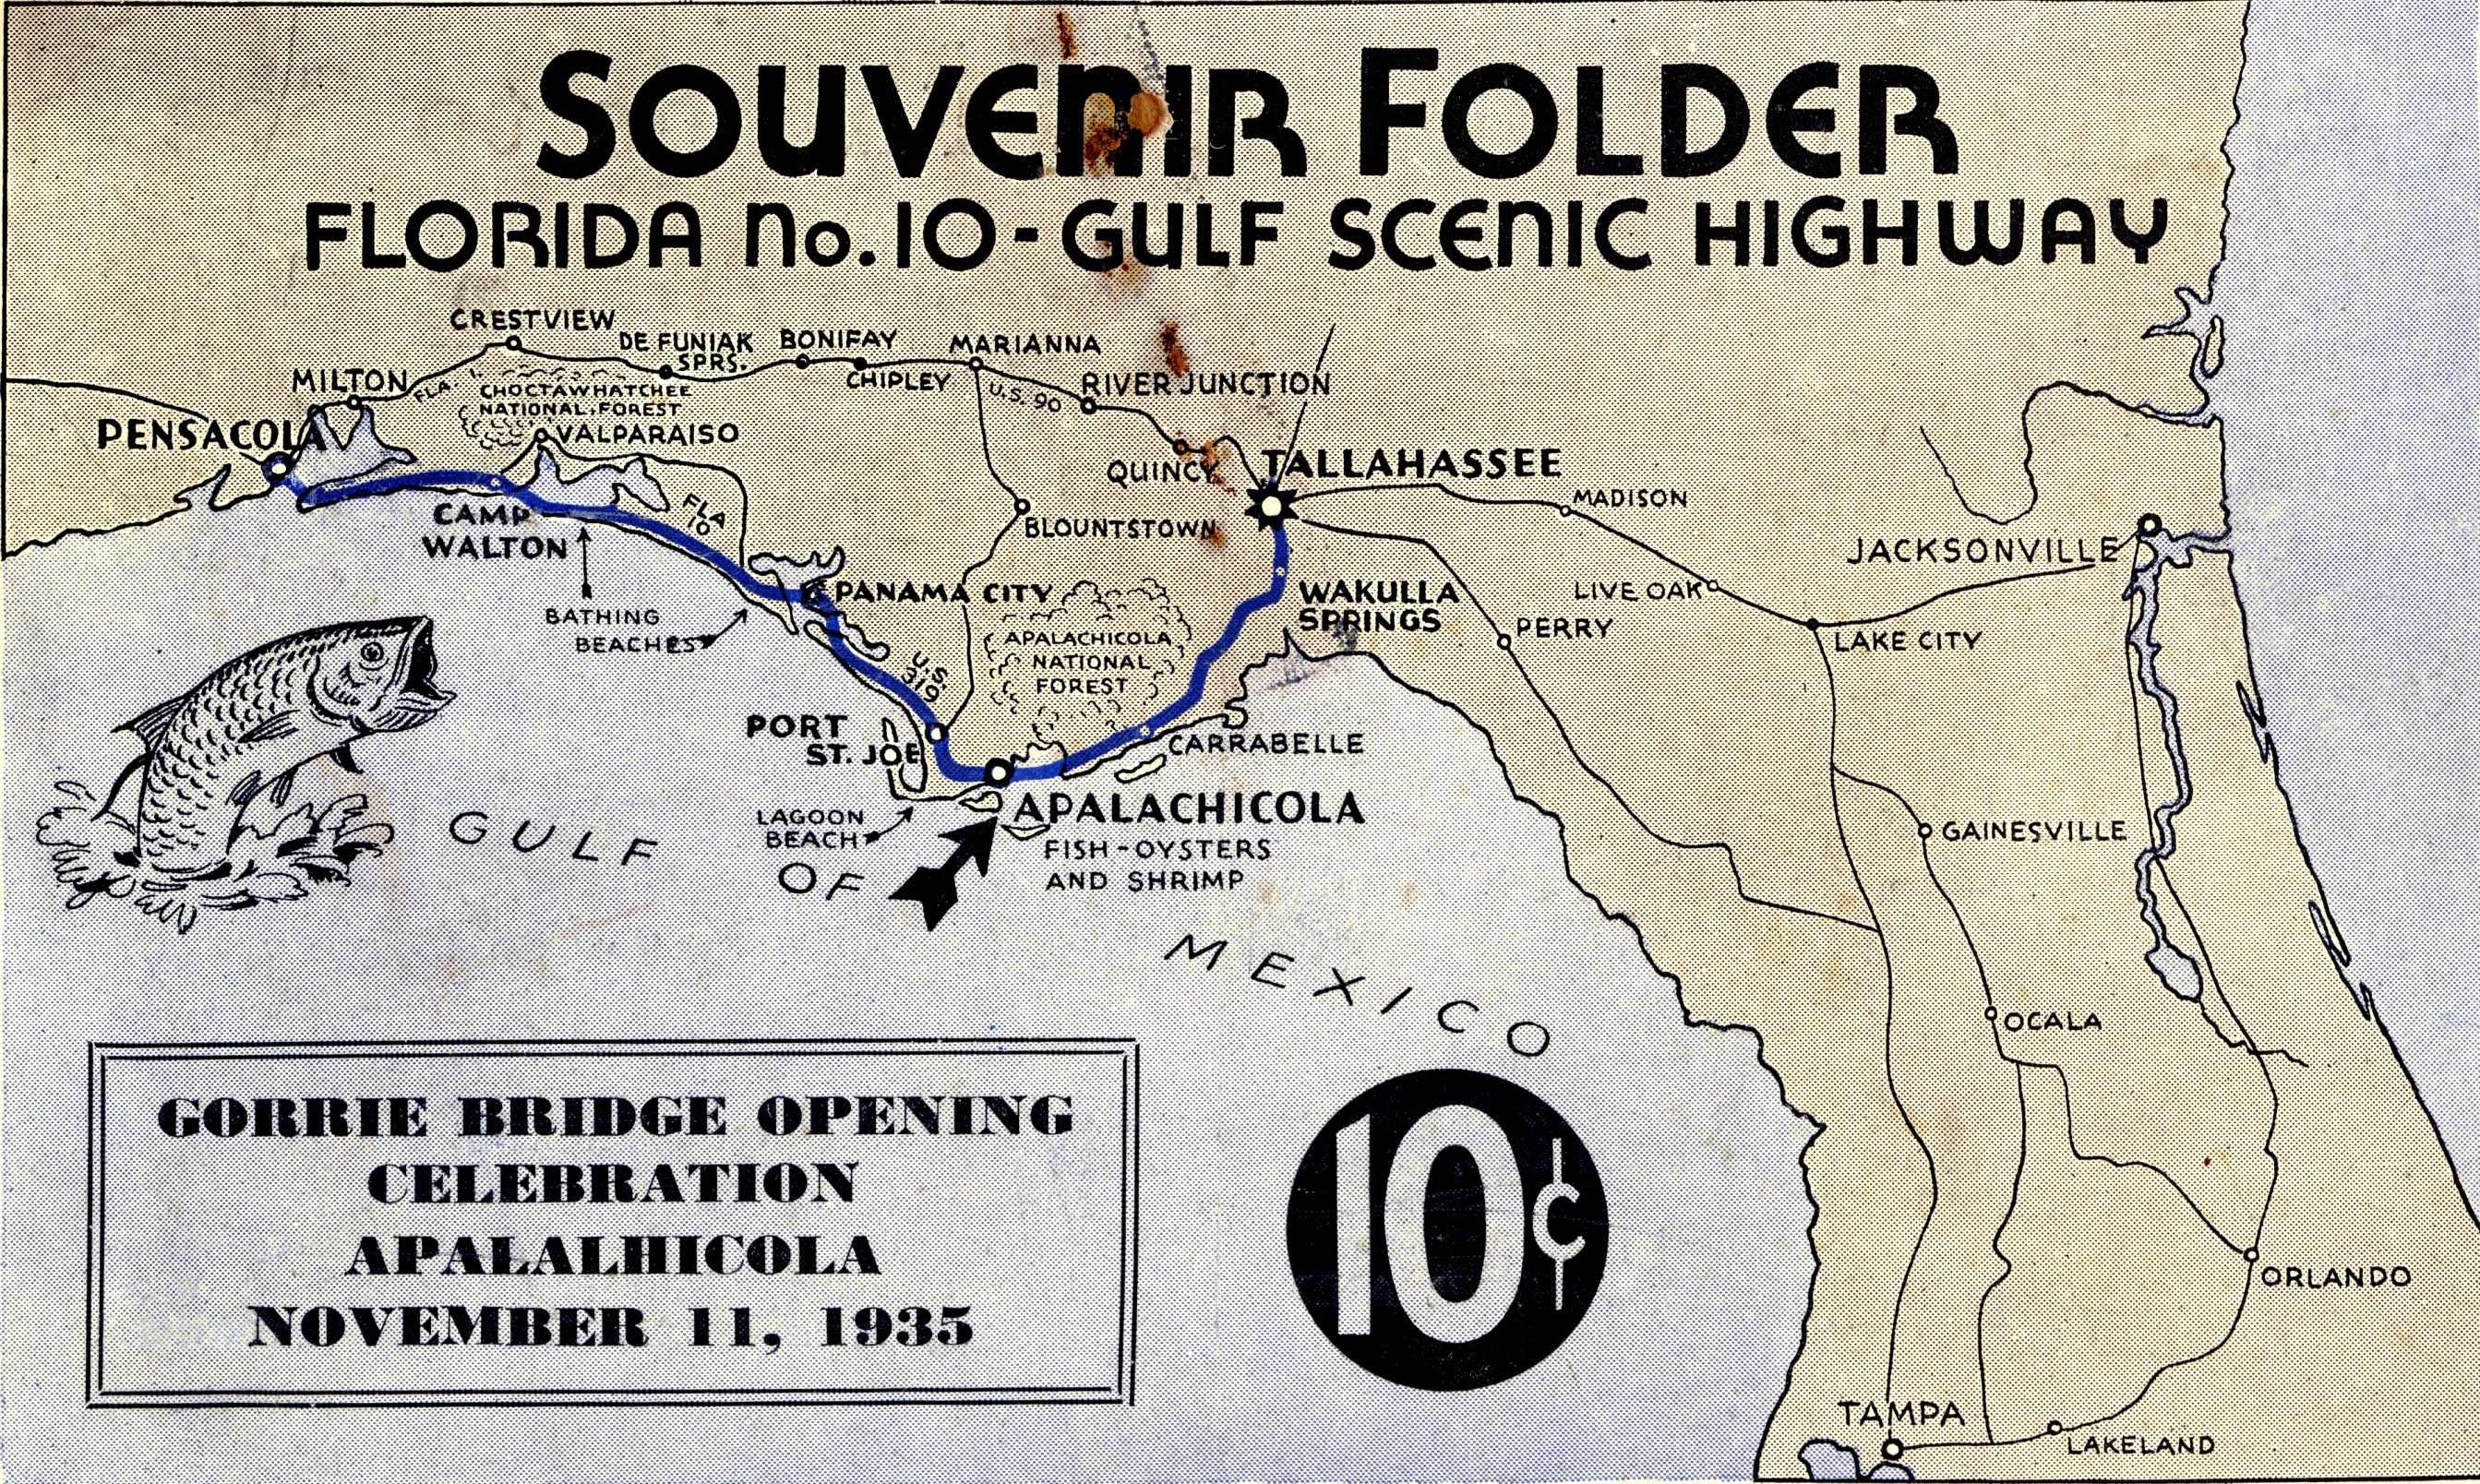 The front cover of the Souvenir Booklet for the 1935 opening of the John Gorrie Bridge.